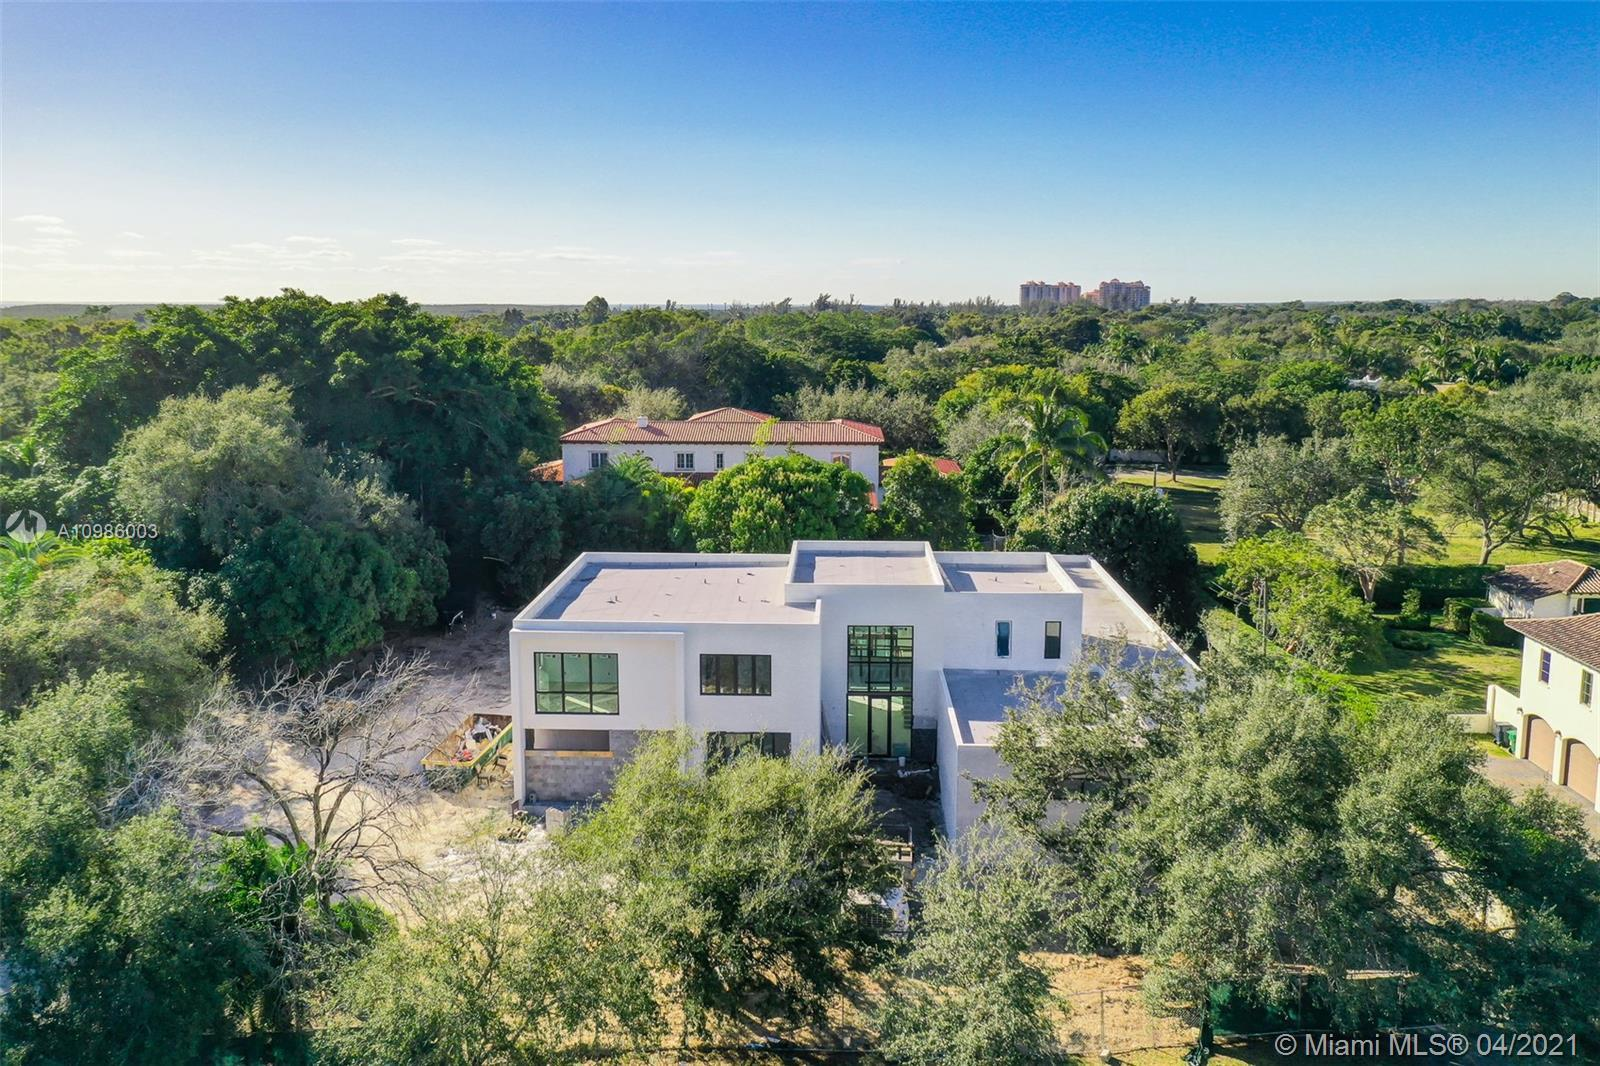 ~ SPECTACULAR CONTEMPORARY MODERN NEW CONSTRUCTION HOME ON QUIET STREET IN PREMIER PINECREST LOCATIO